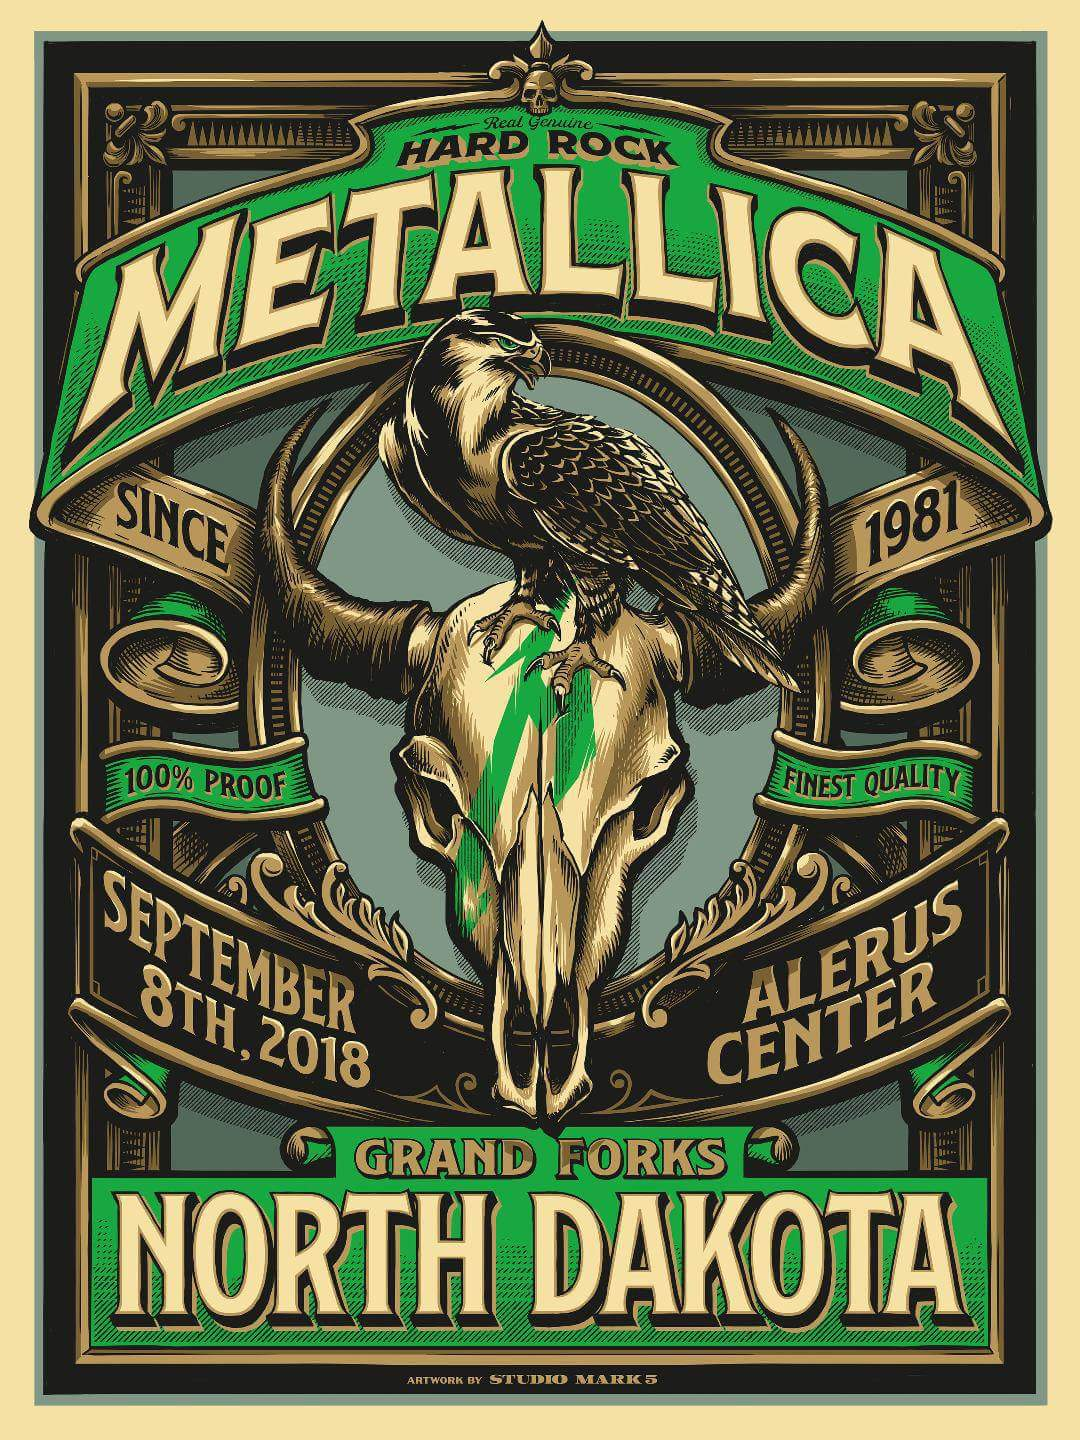 Metallica Tourposter 2018-09-08 - Grand Forks, ND